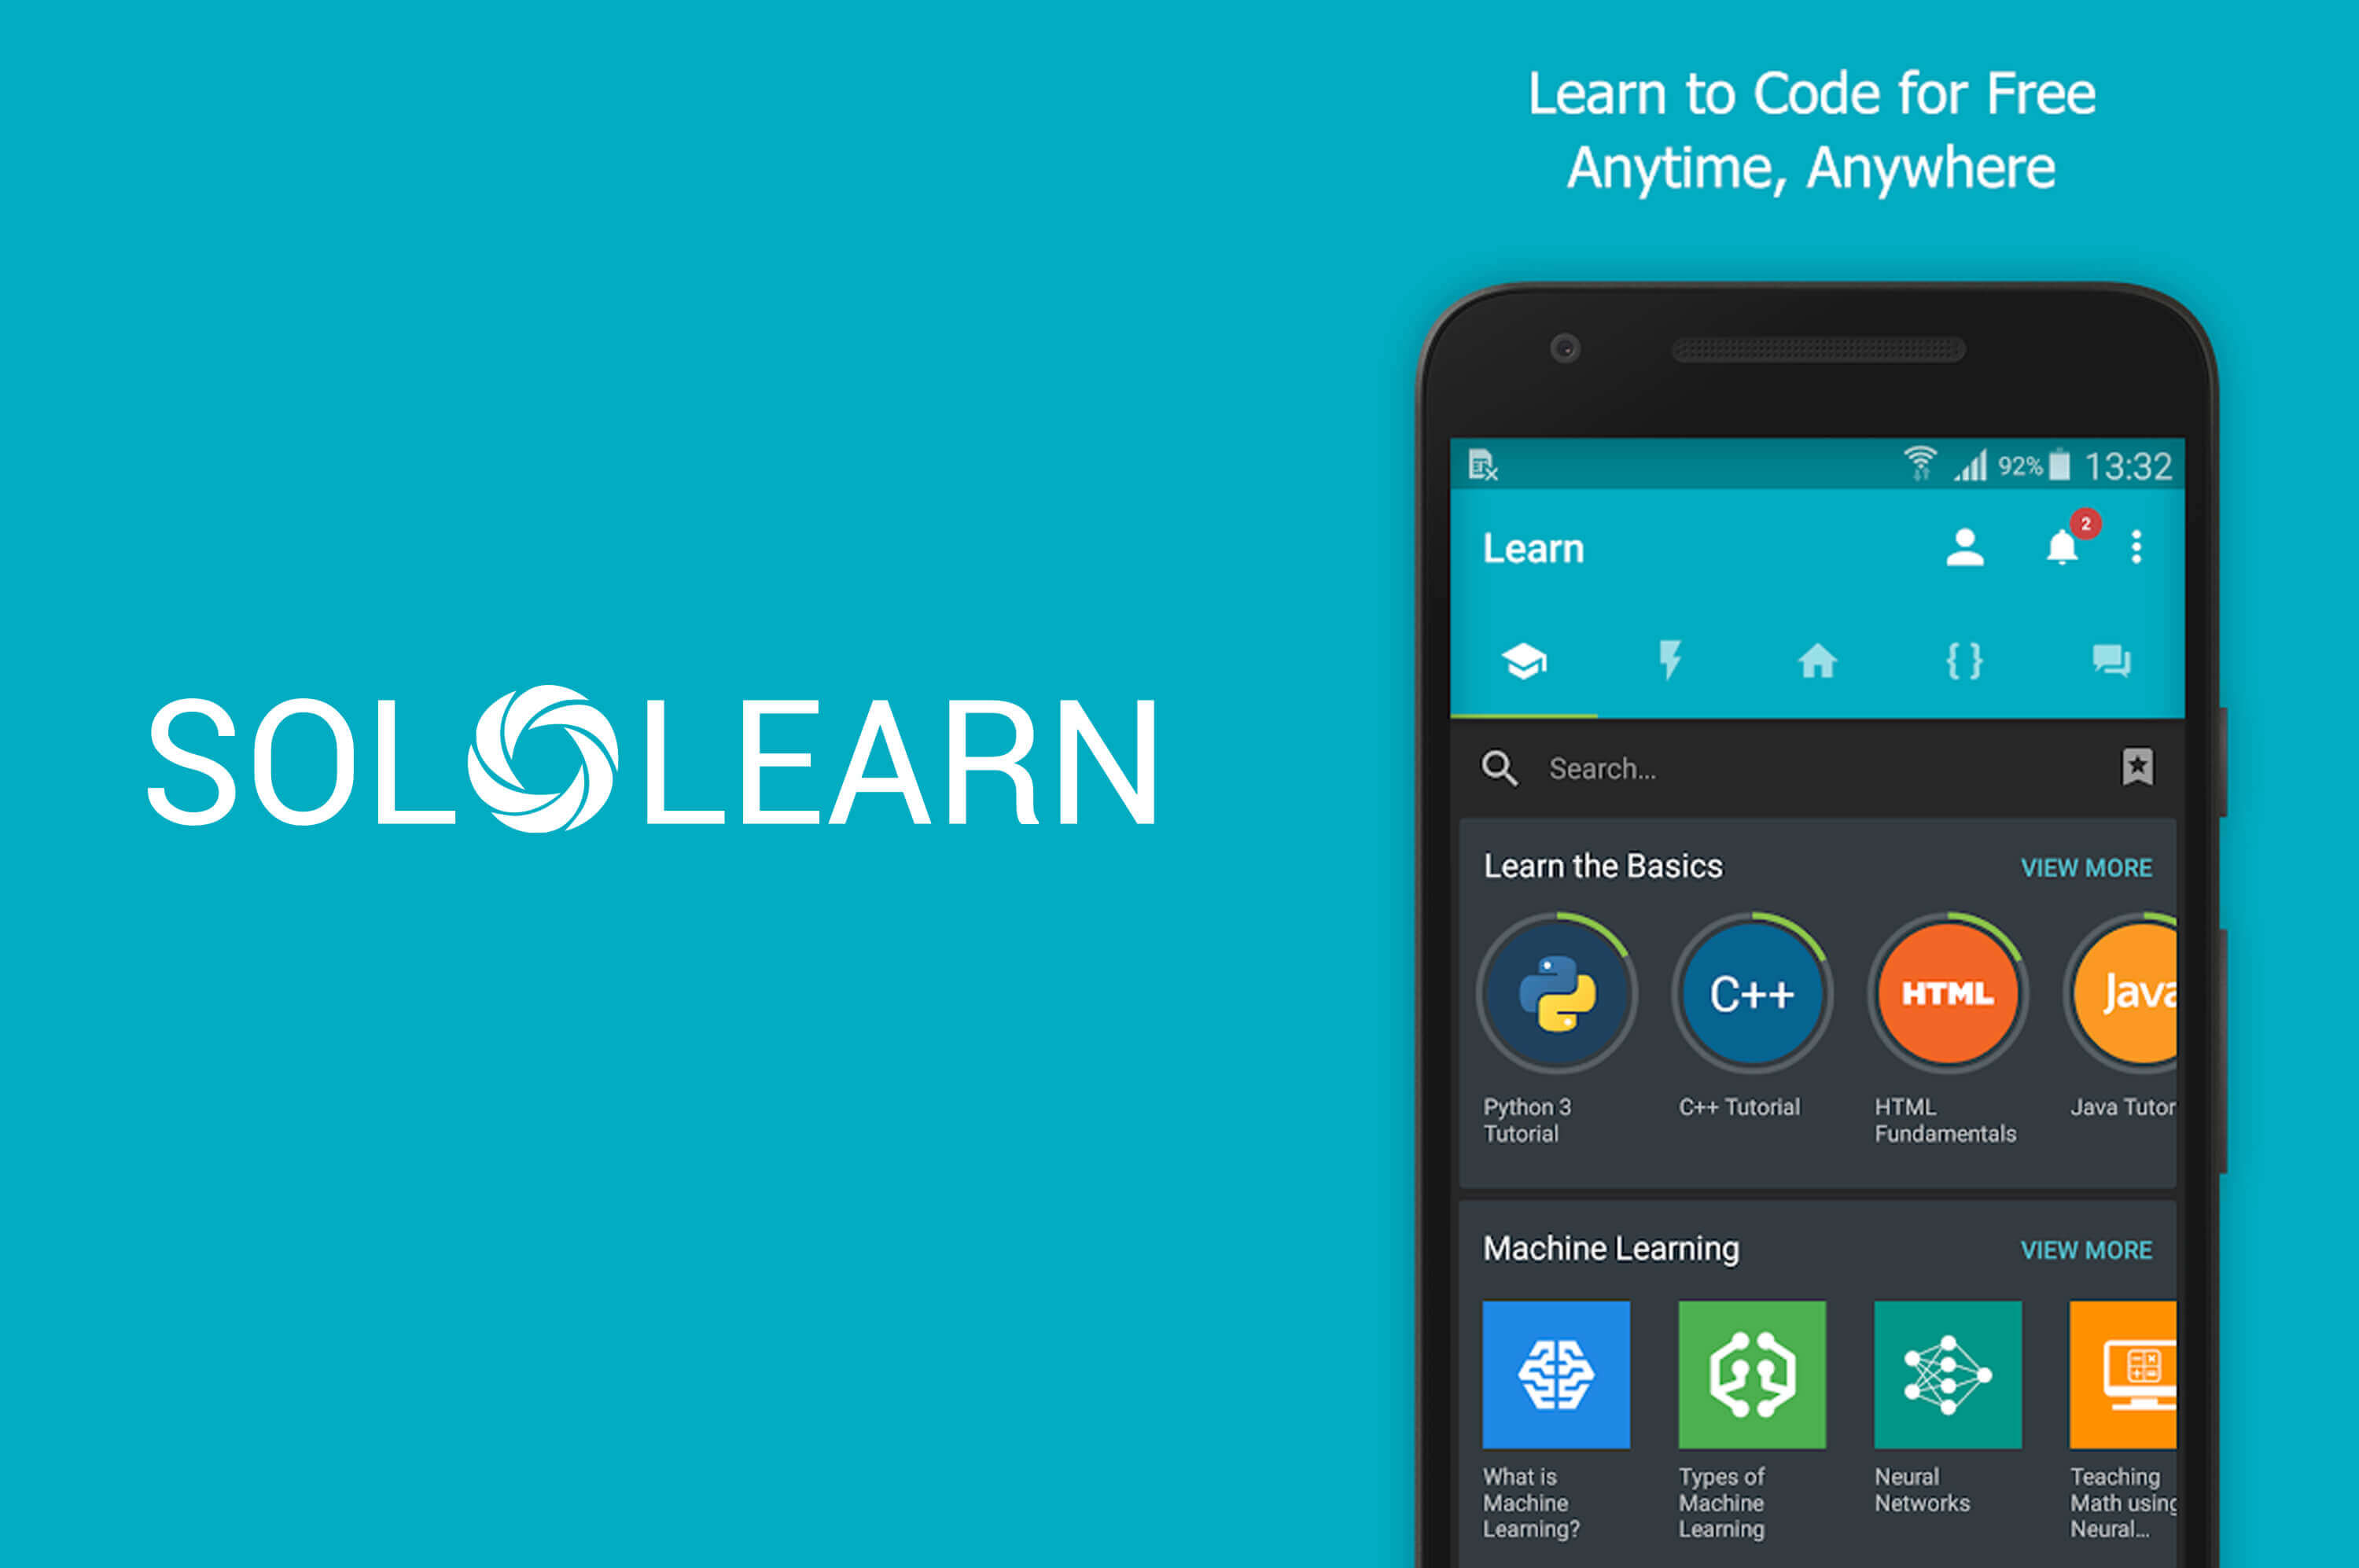 a smartphone with solo learn app